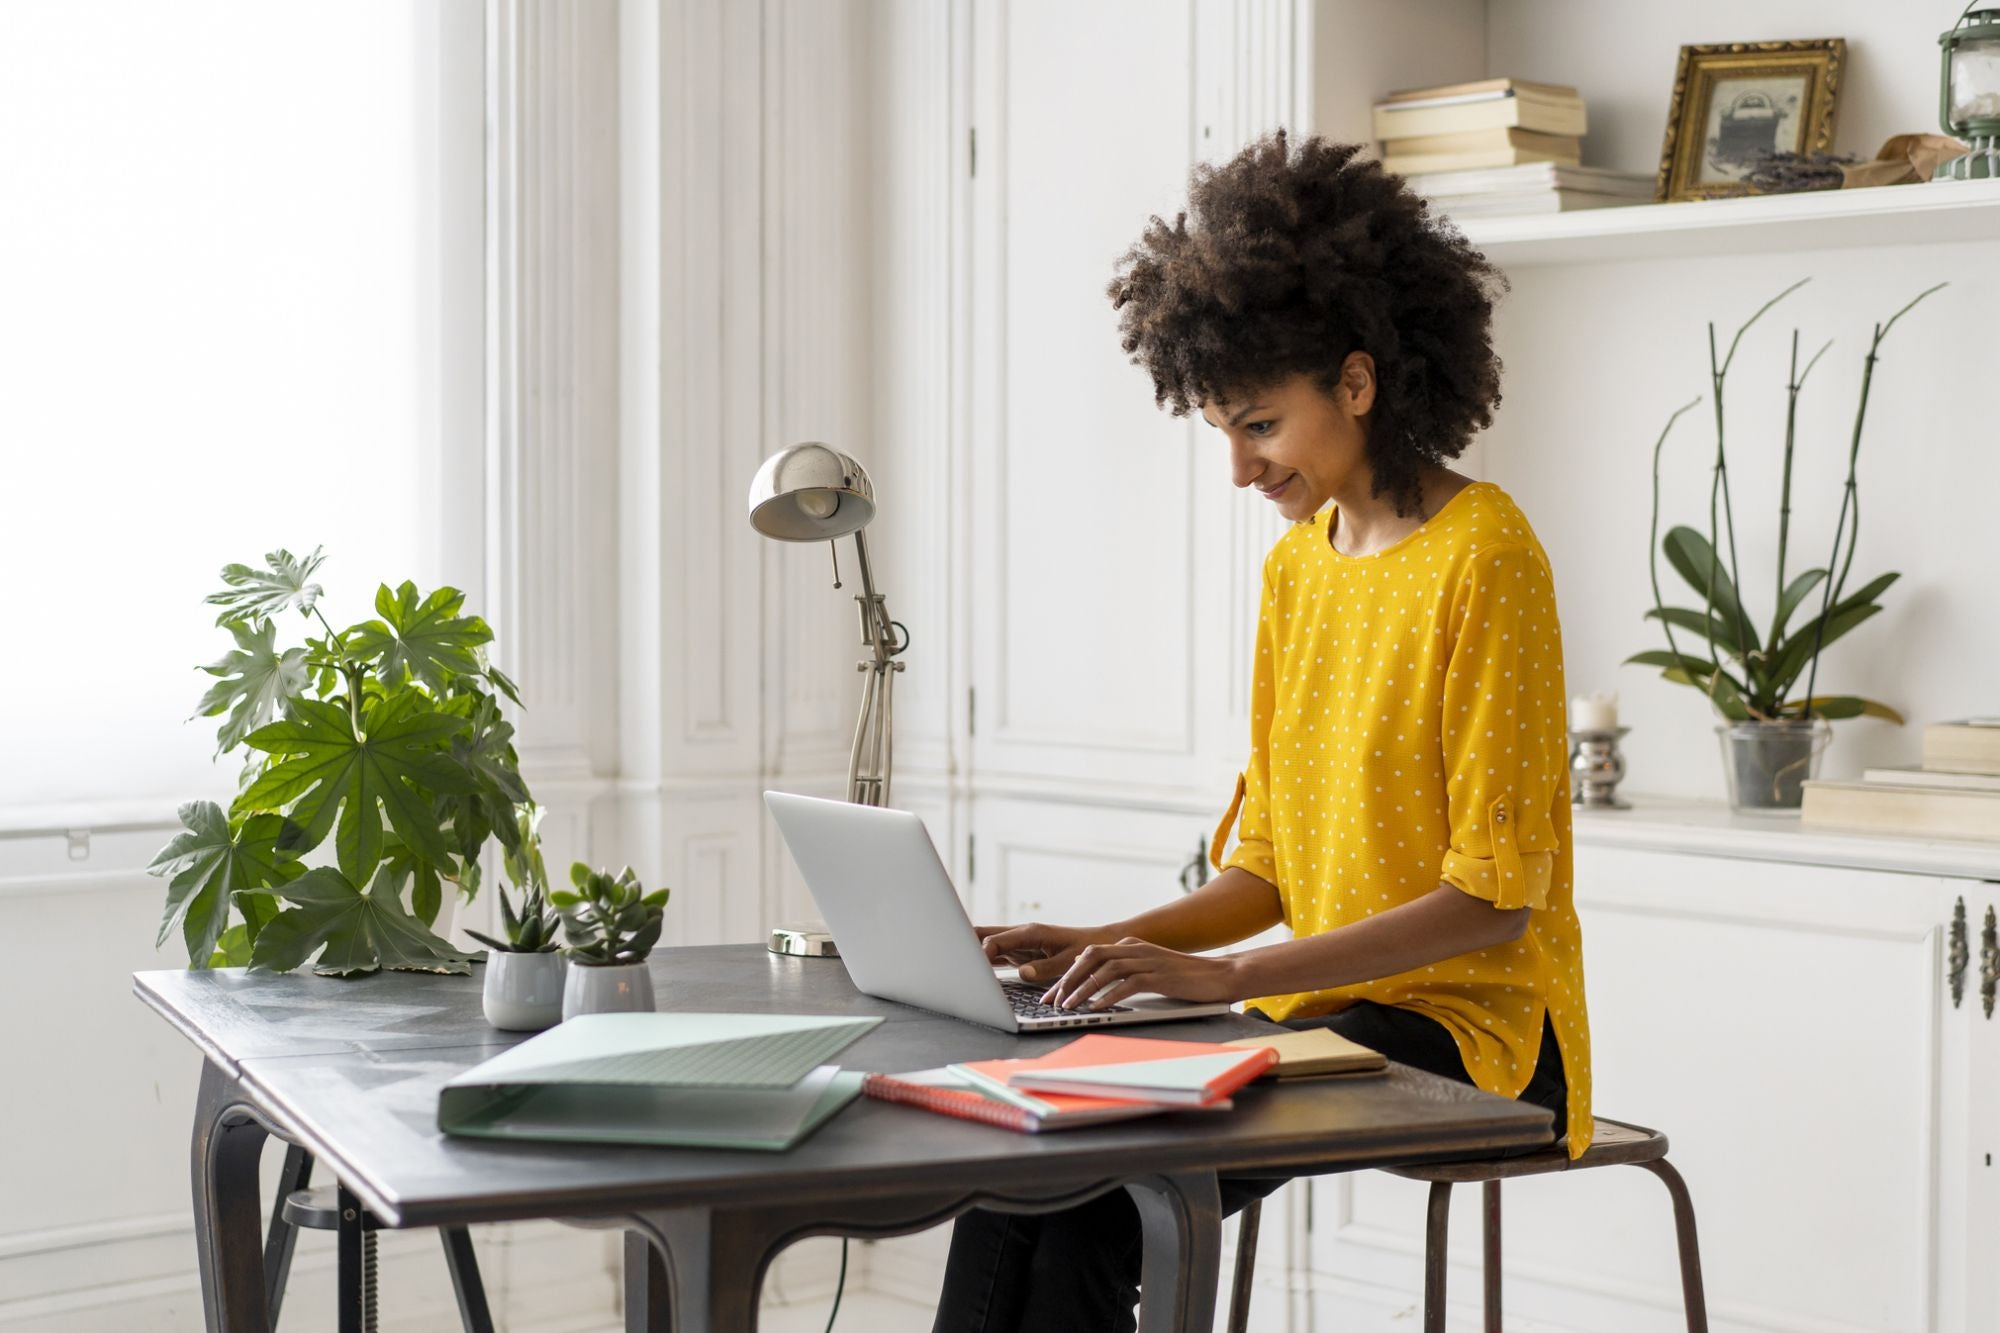 10 Tips From CEOs on Working From Home Effectively and Happily